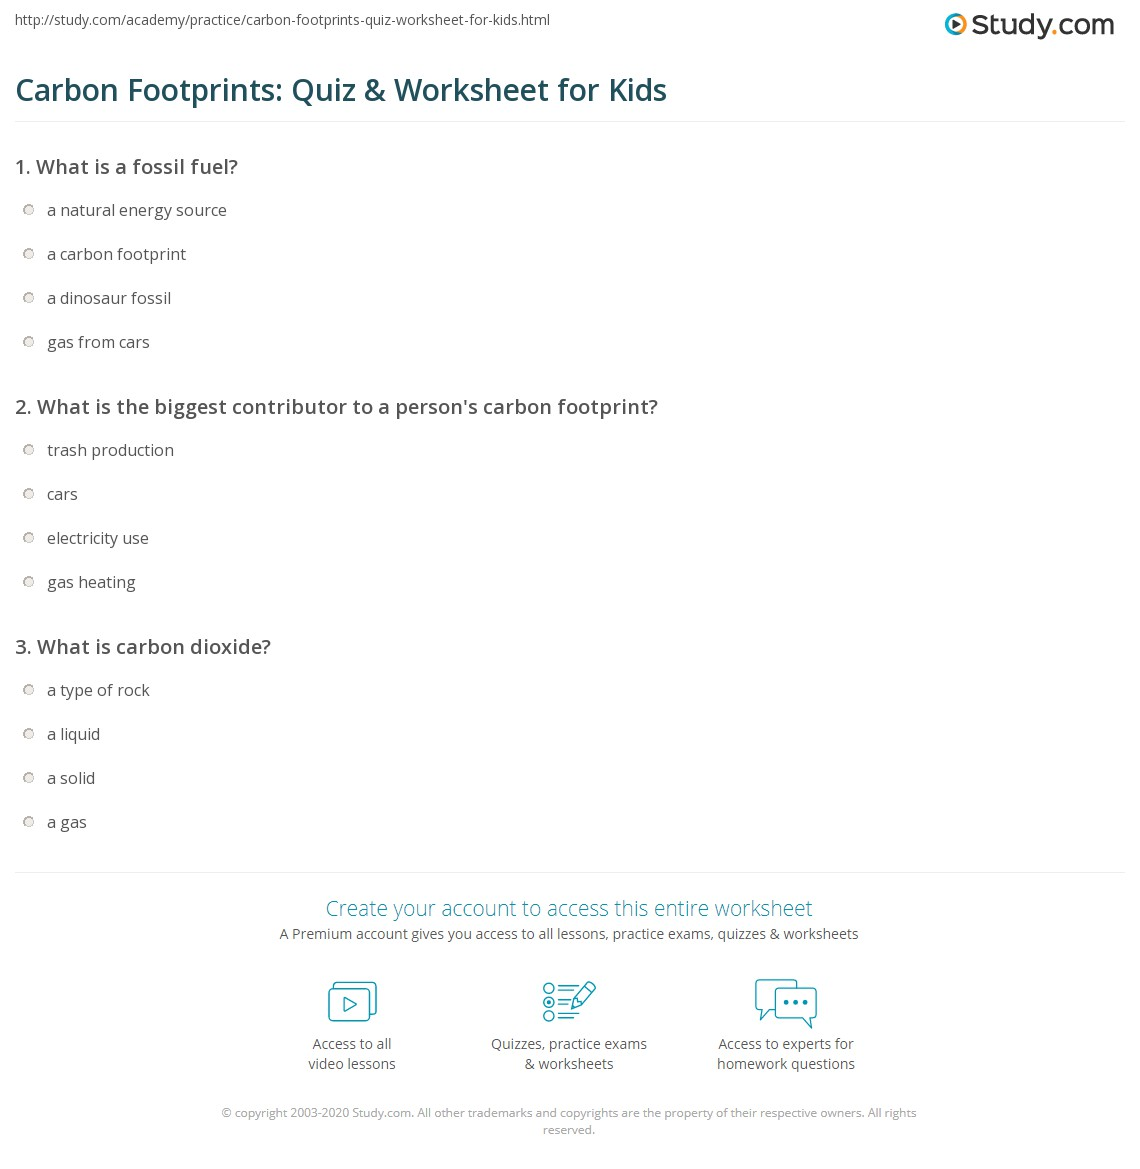 Worksheets Carbon Footprint Worksheet carbon footprints quiz worksheet for kids study com print footprint lesson definition facts worksheet